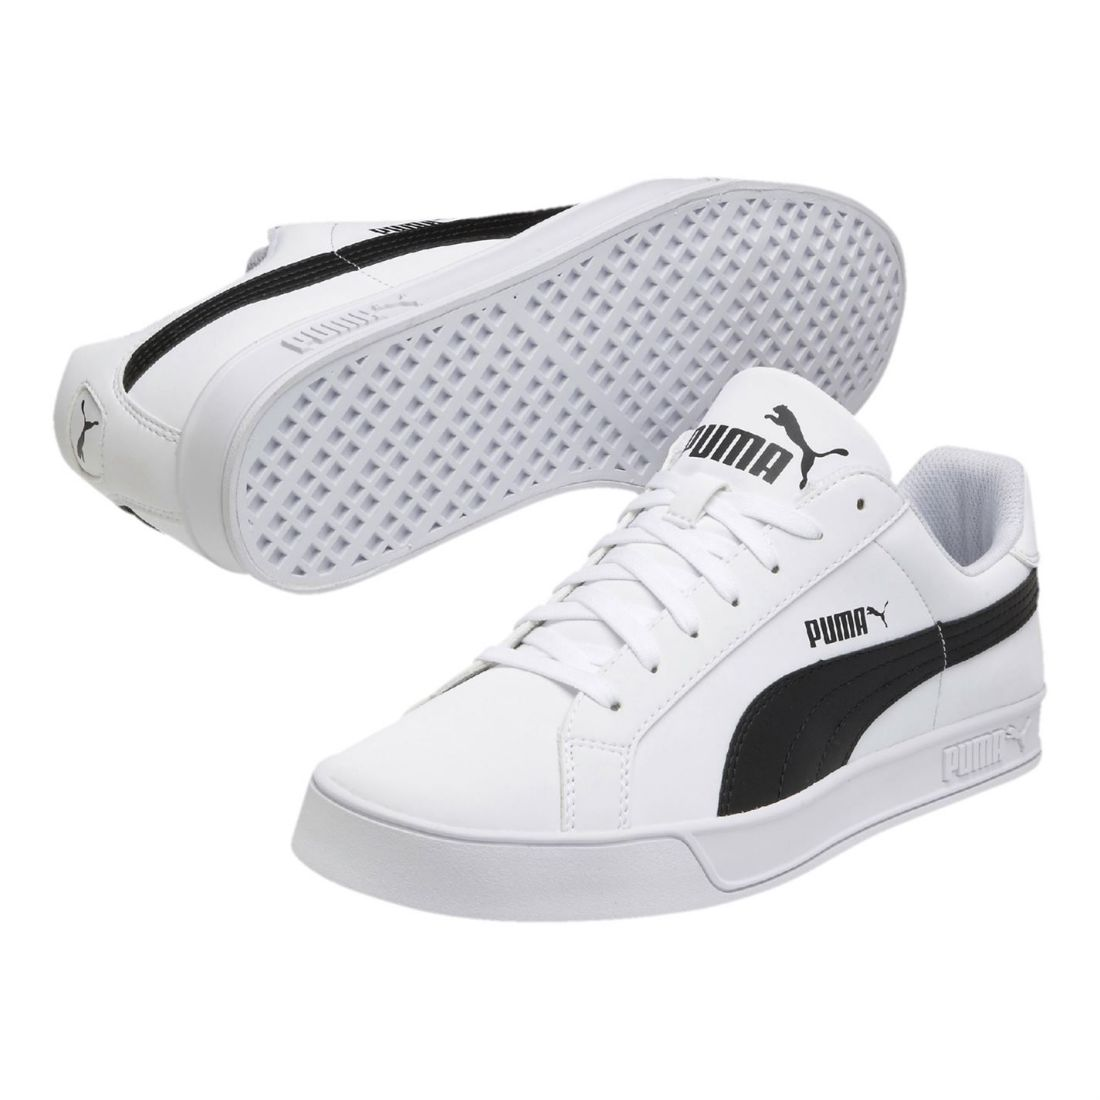 Puma Mens Smash Vulc Trainers Low Lace Up Padded Ankle Collar Flat ... 7e4d5d6b8